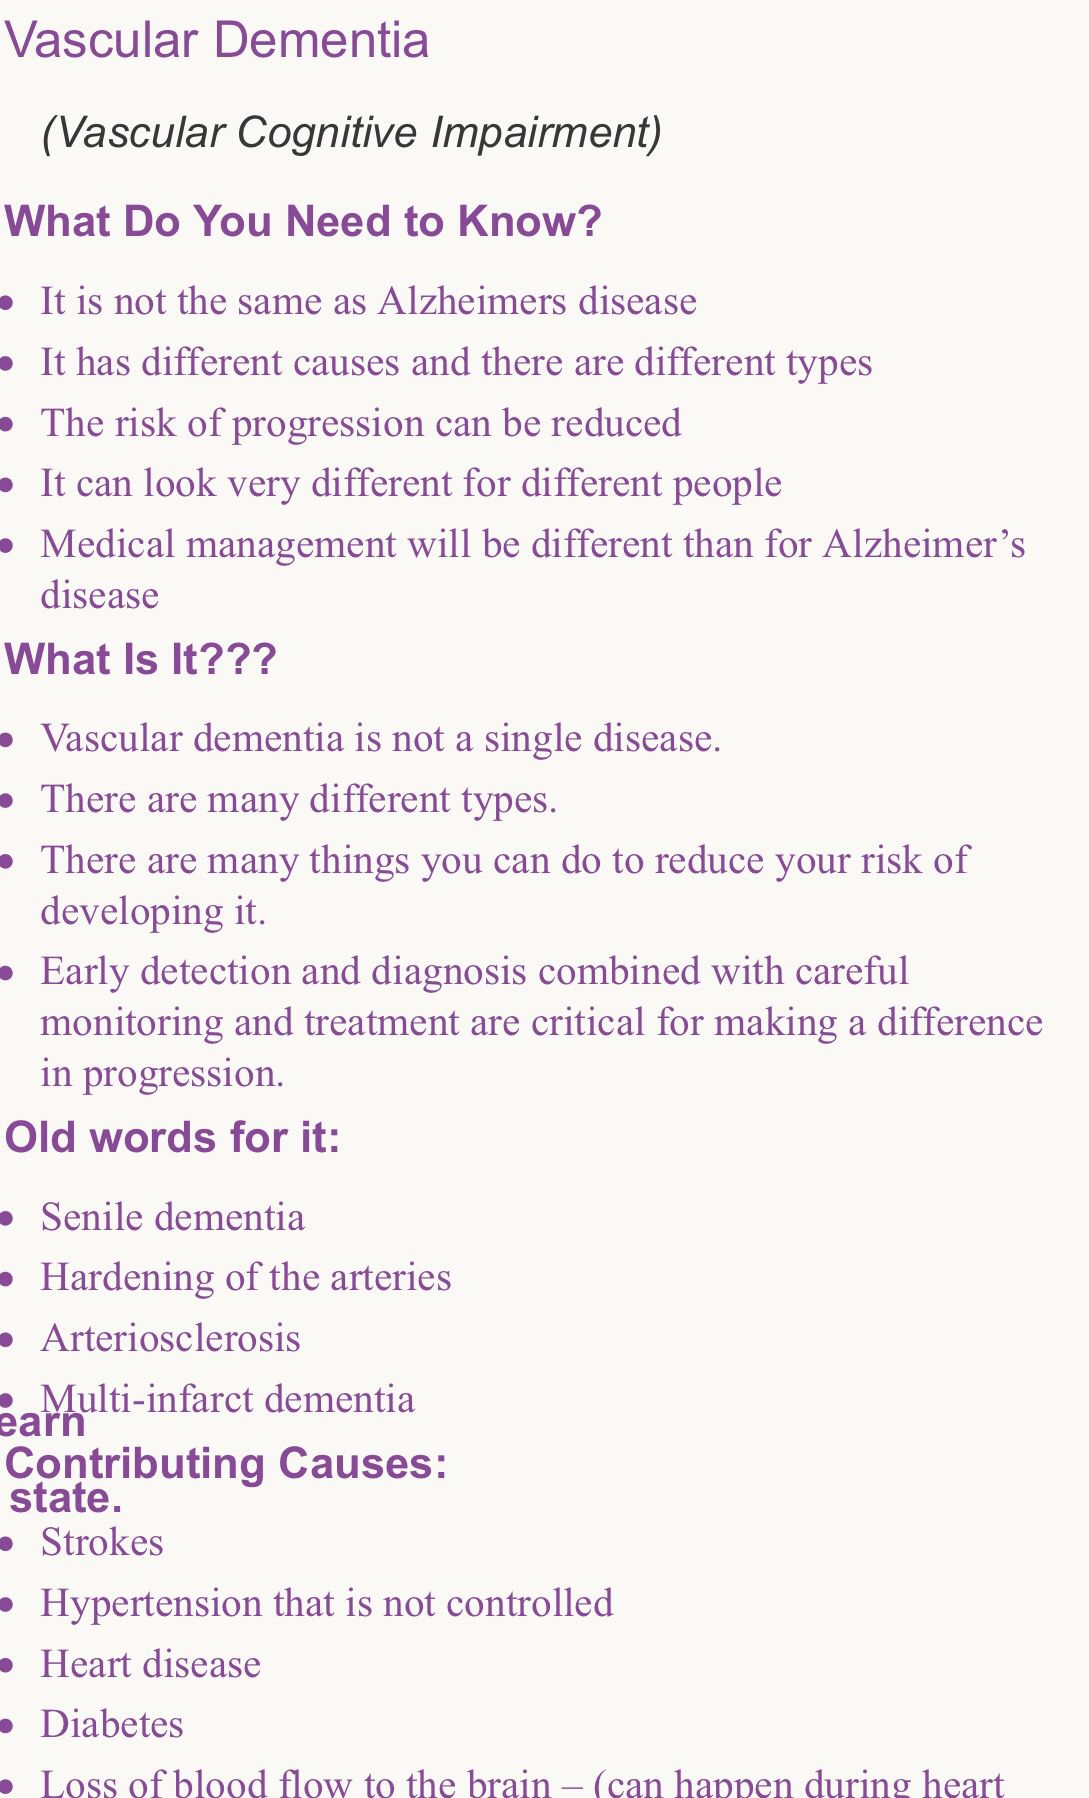 Pin By Pam Young On Vascular Dementia